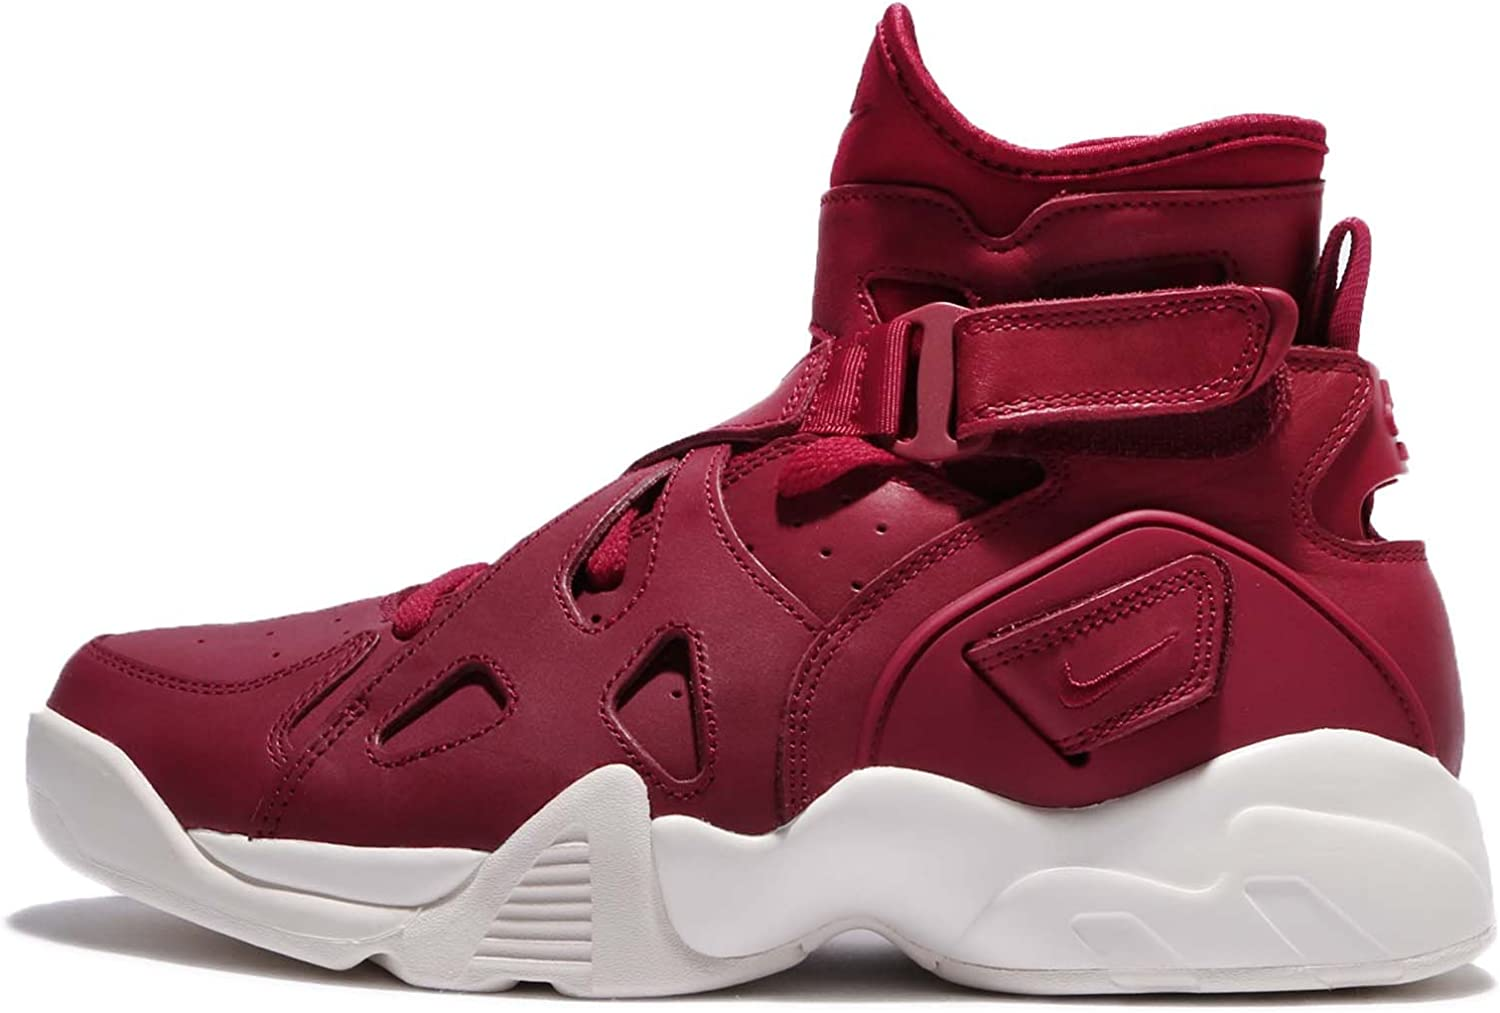 Nike Mens AIR Unlimited Red Leather